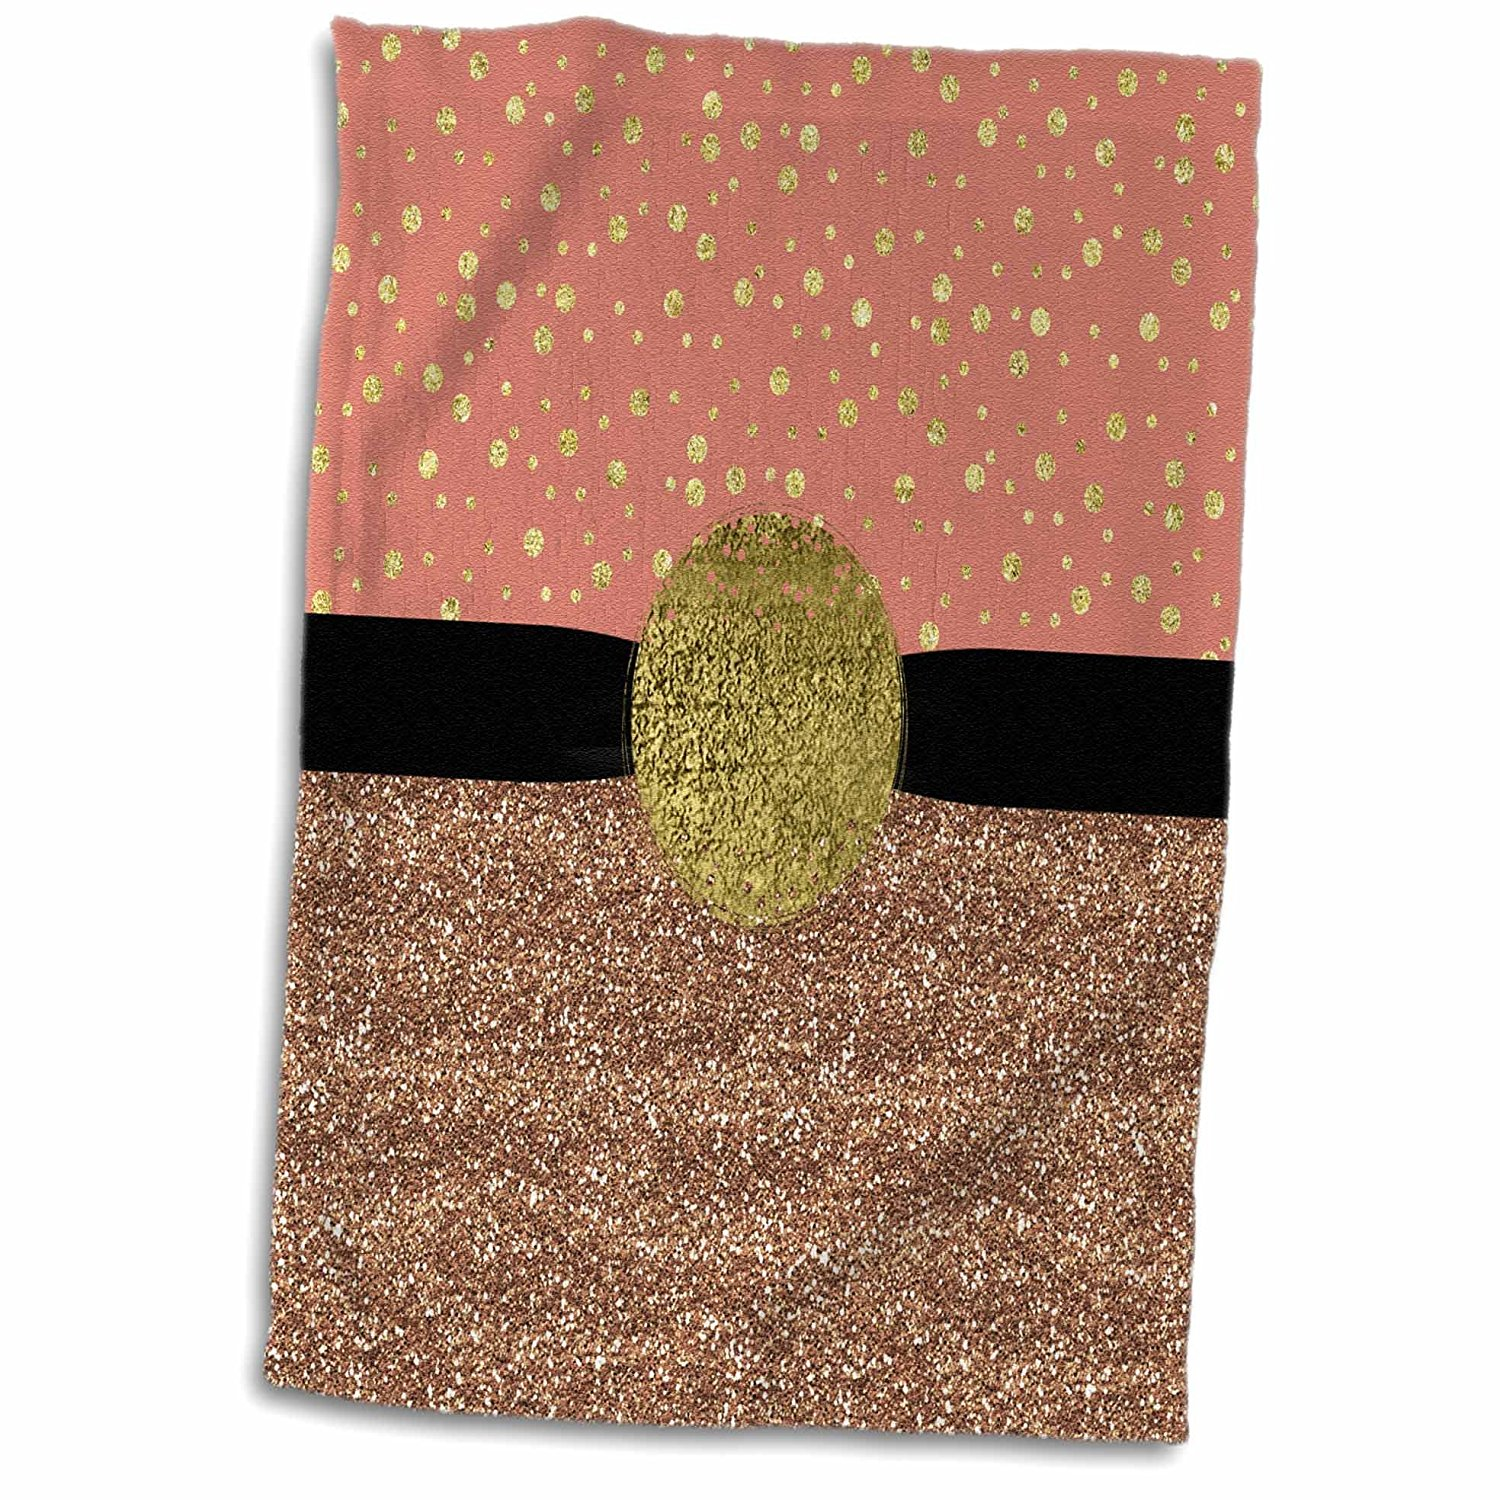 3dRose Anne Marie Baugh - Glitter and Chic - Contemporary Pink and Gold Confetti Dots, Glitter, Gold Circle - 15x22 Hand Towel (twl_267786_1)